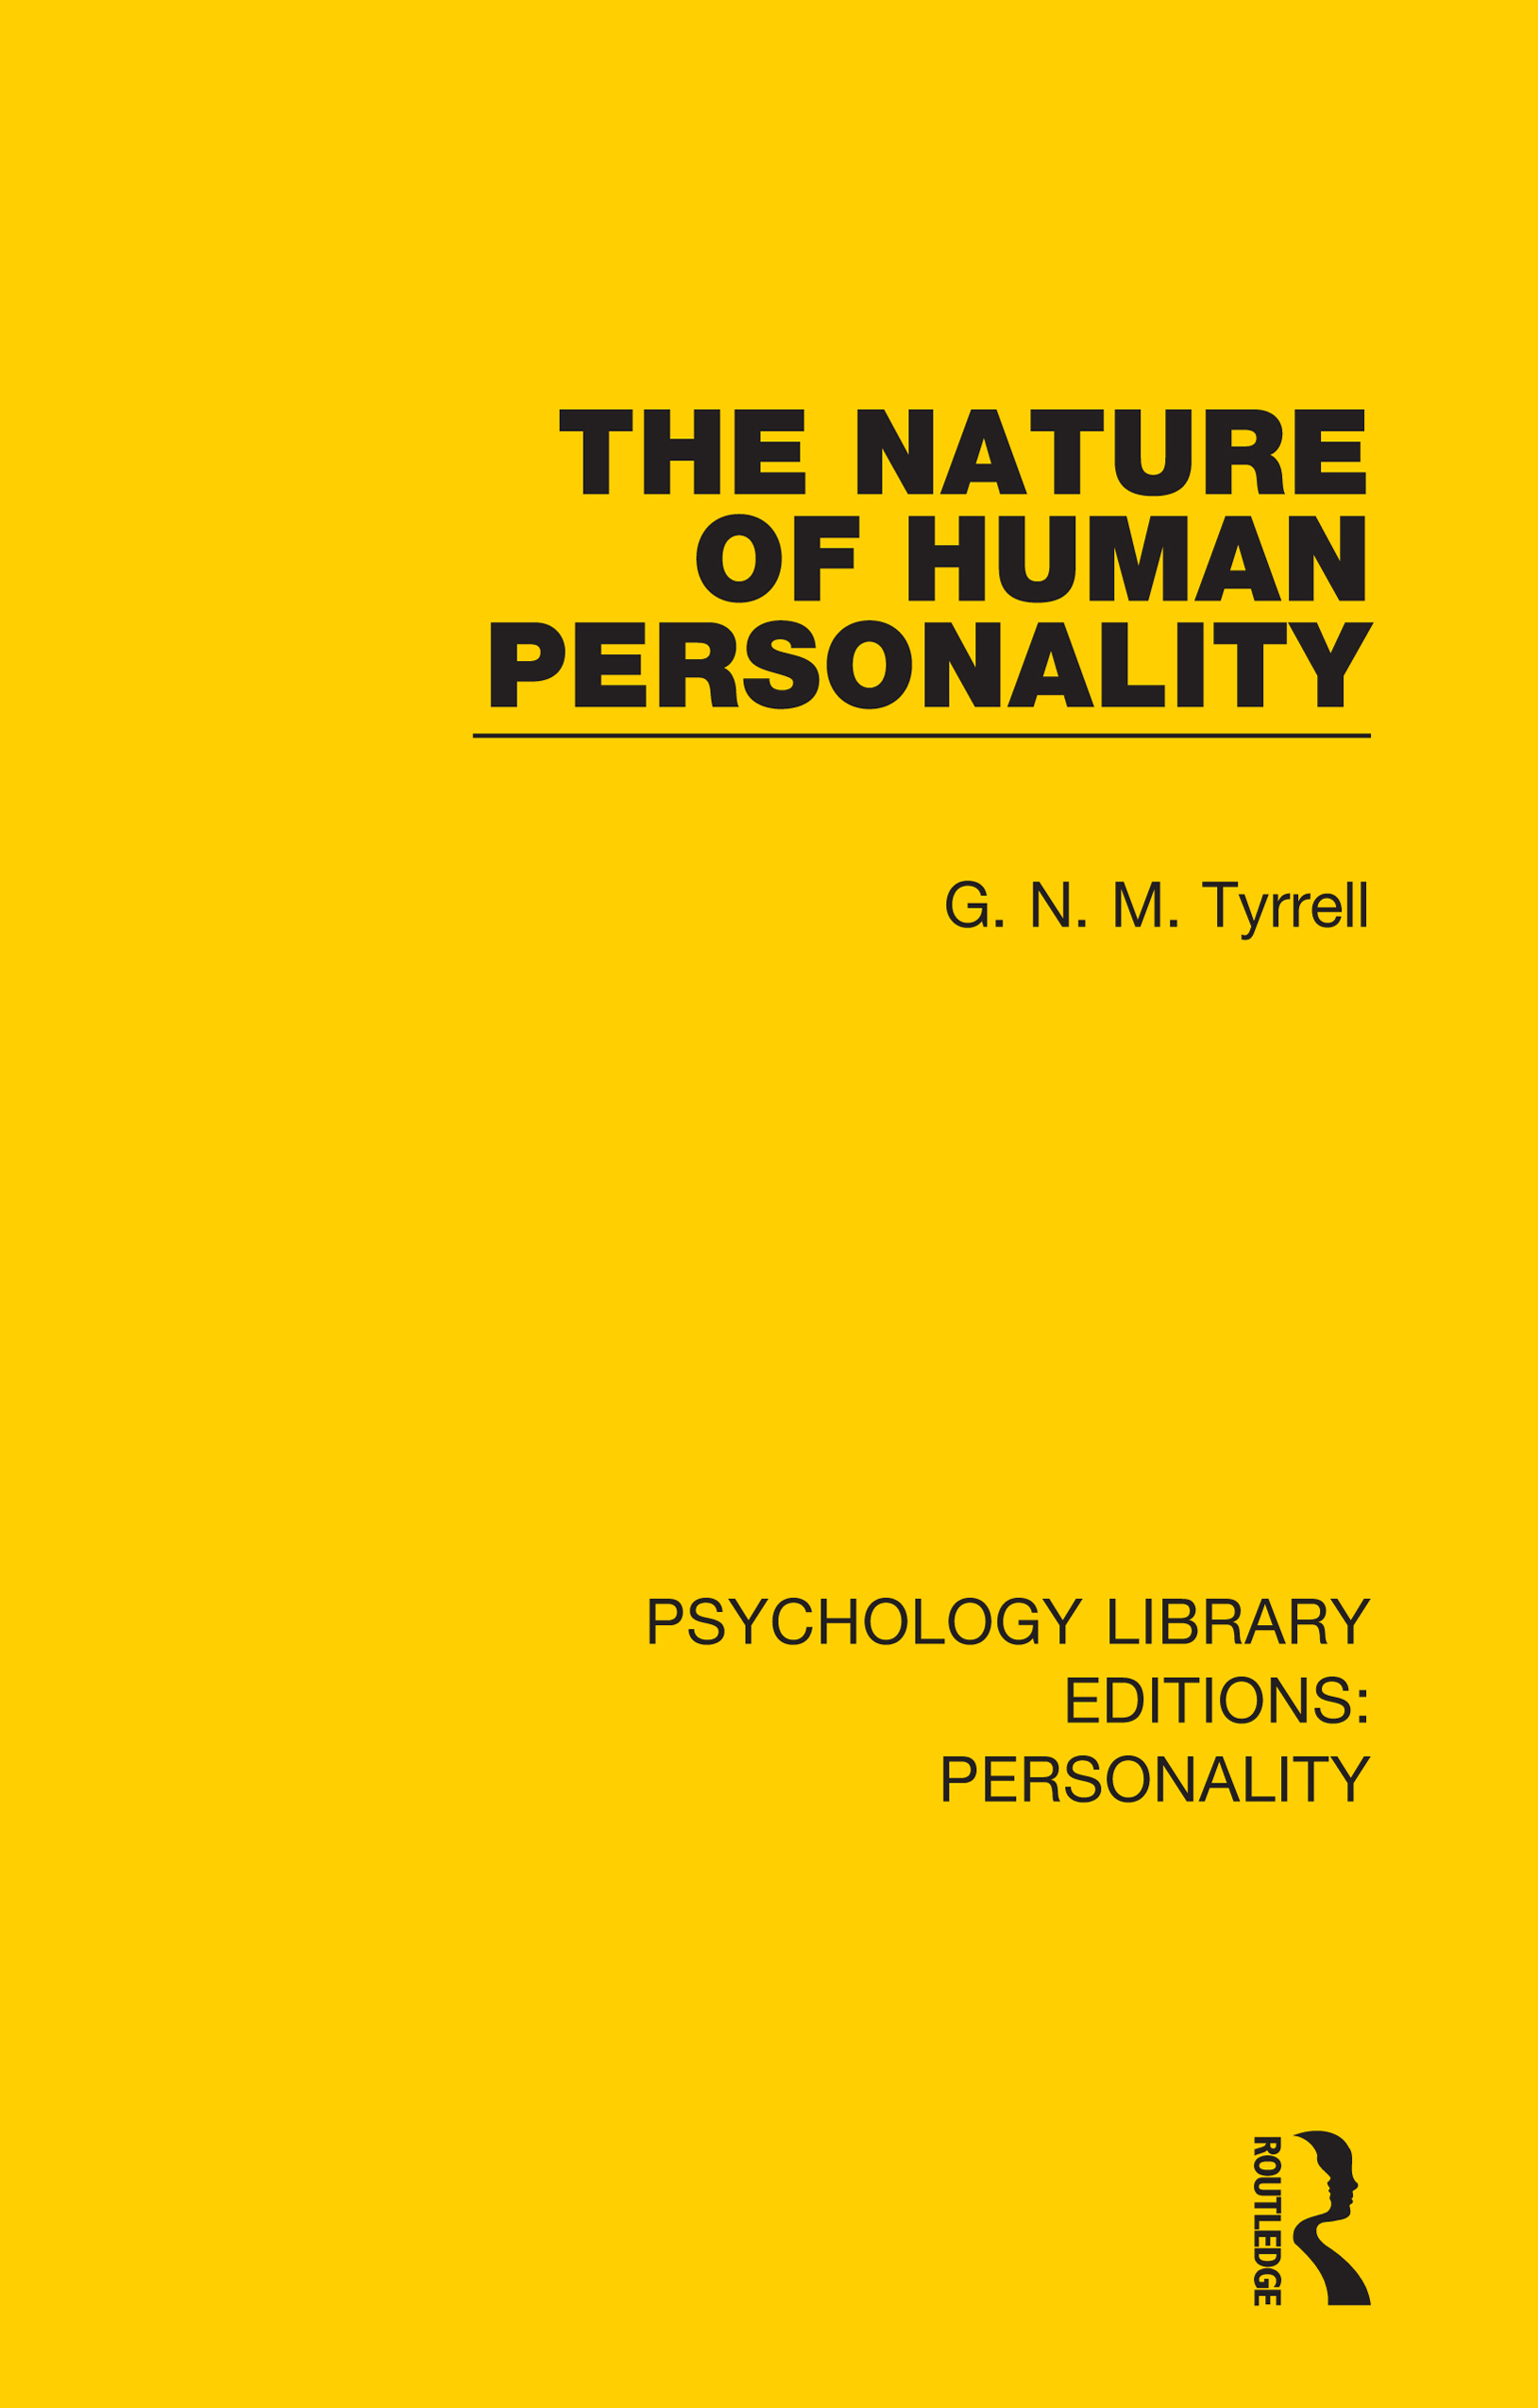 The Nature of Human Personality